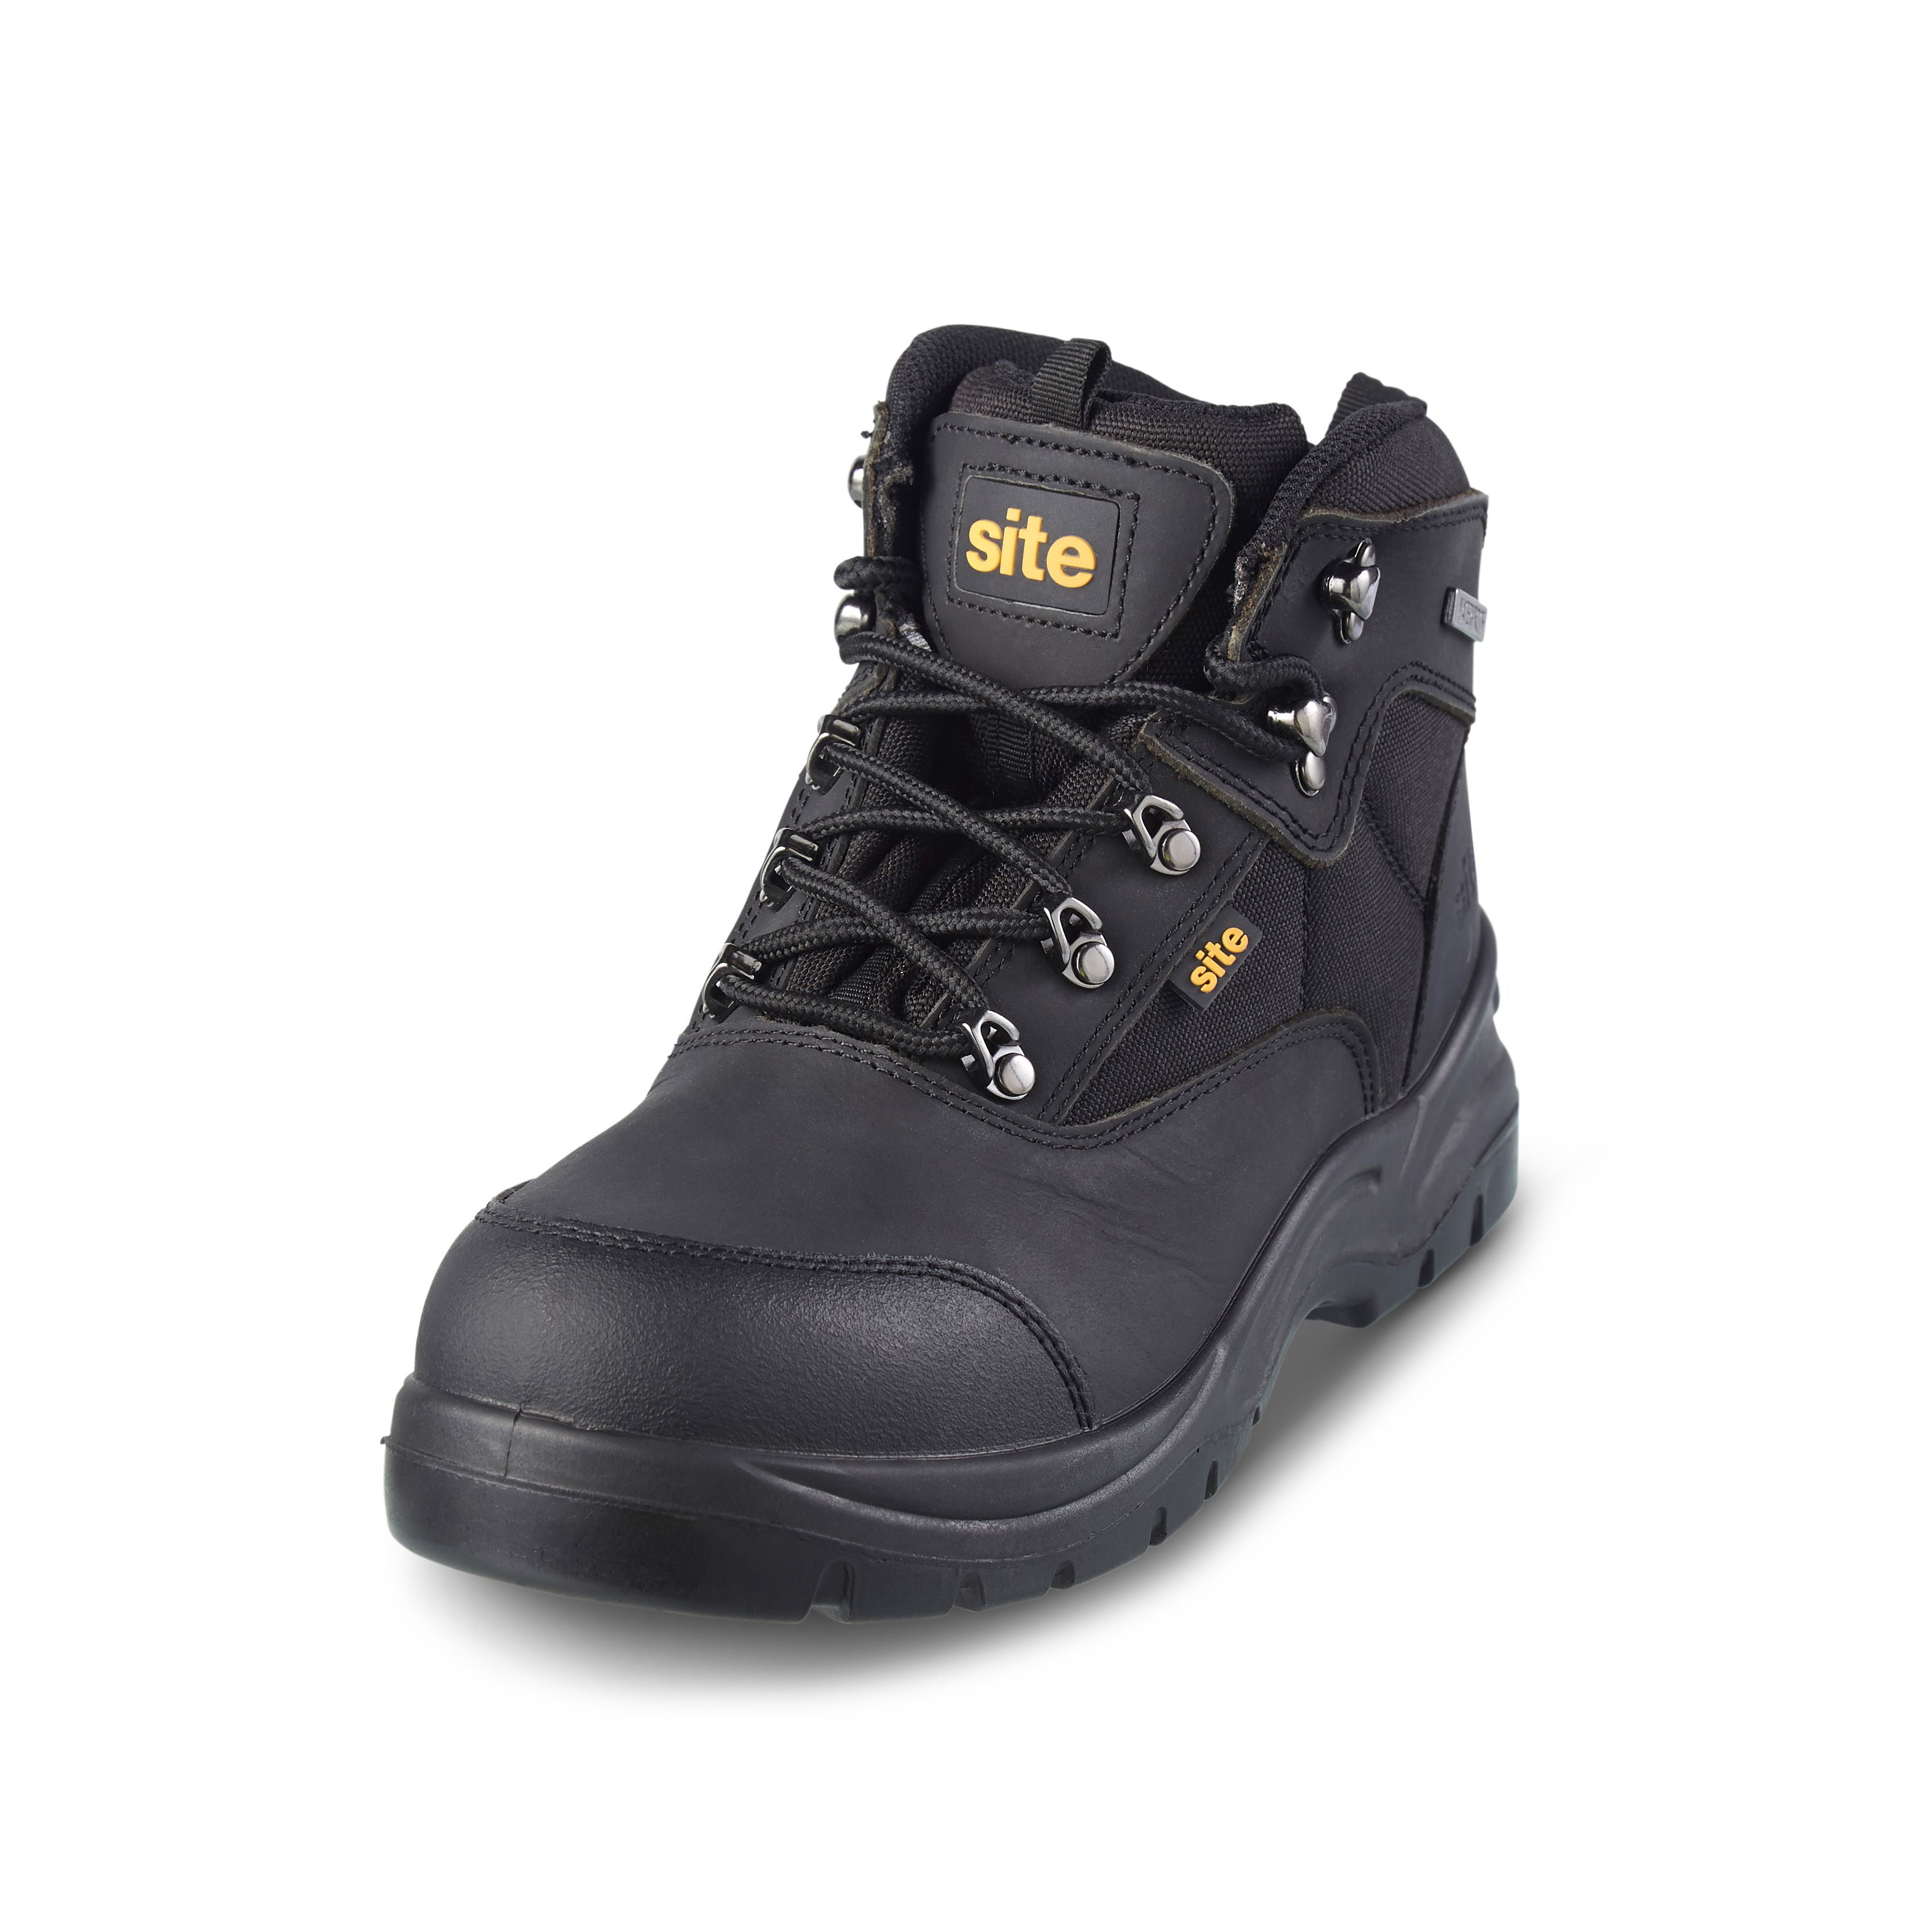 fc32efc0a90 Site Onyx Black Safety boots, Size 9 | Departments | DIY at B&Q